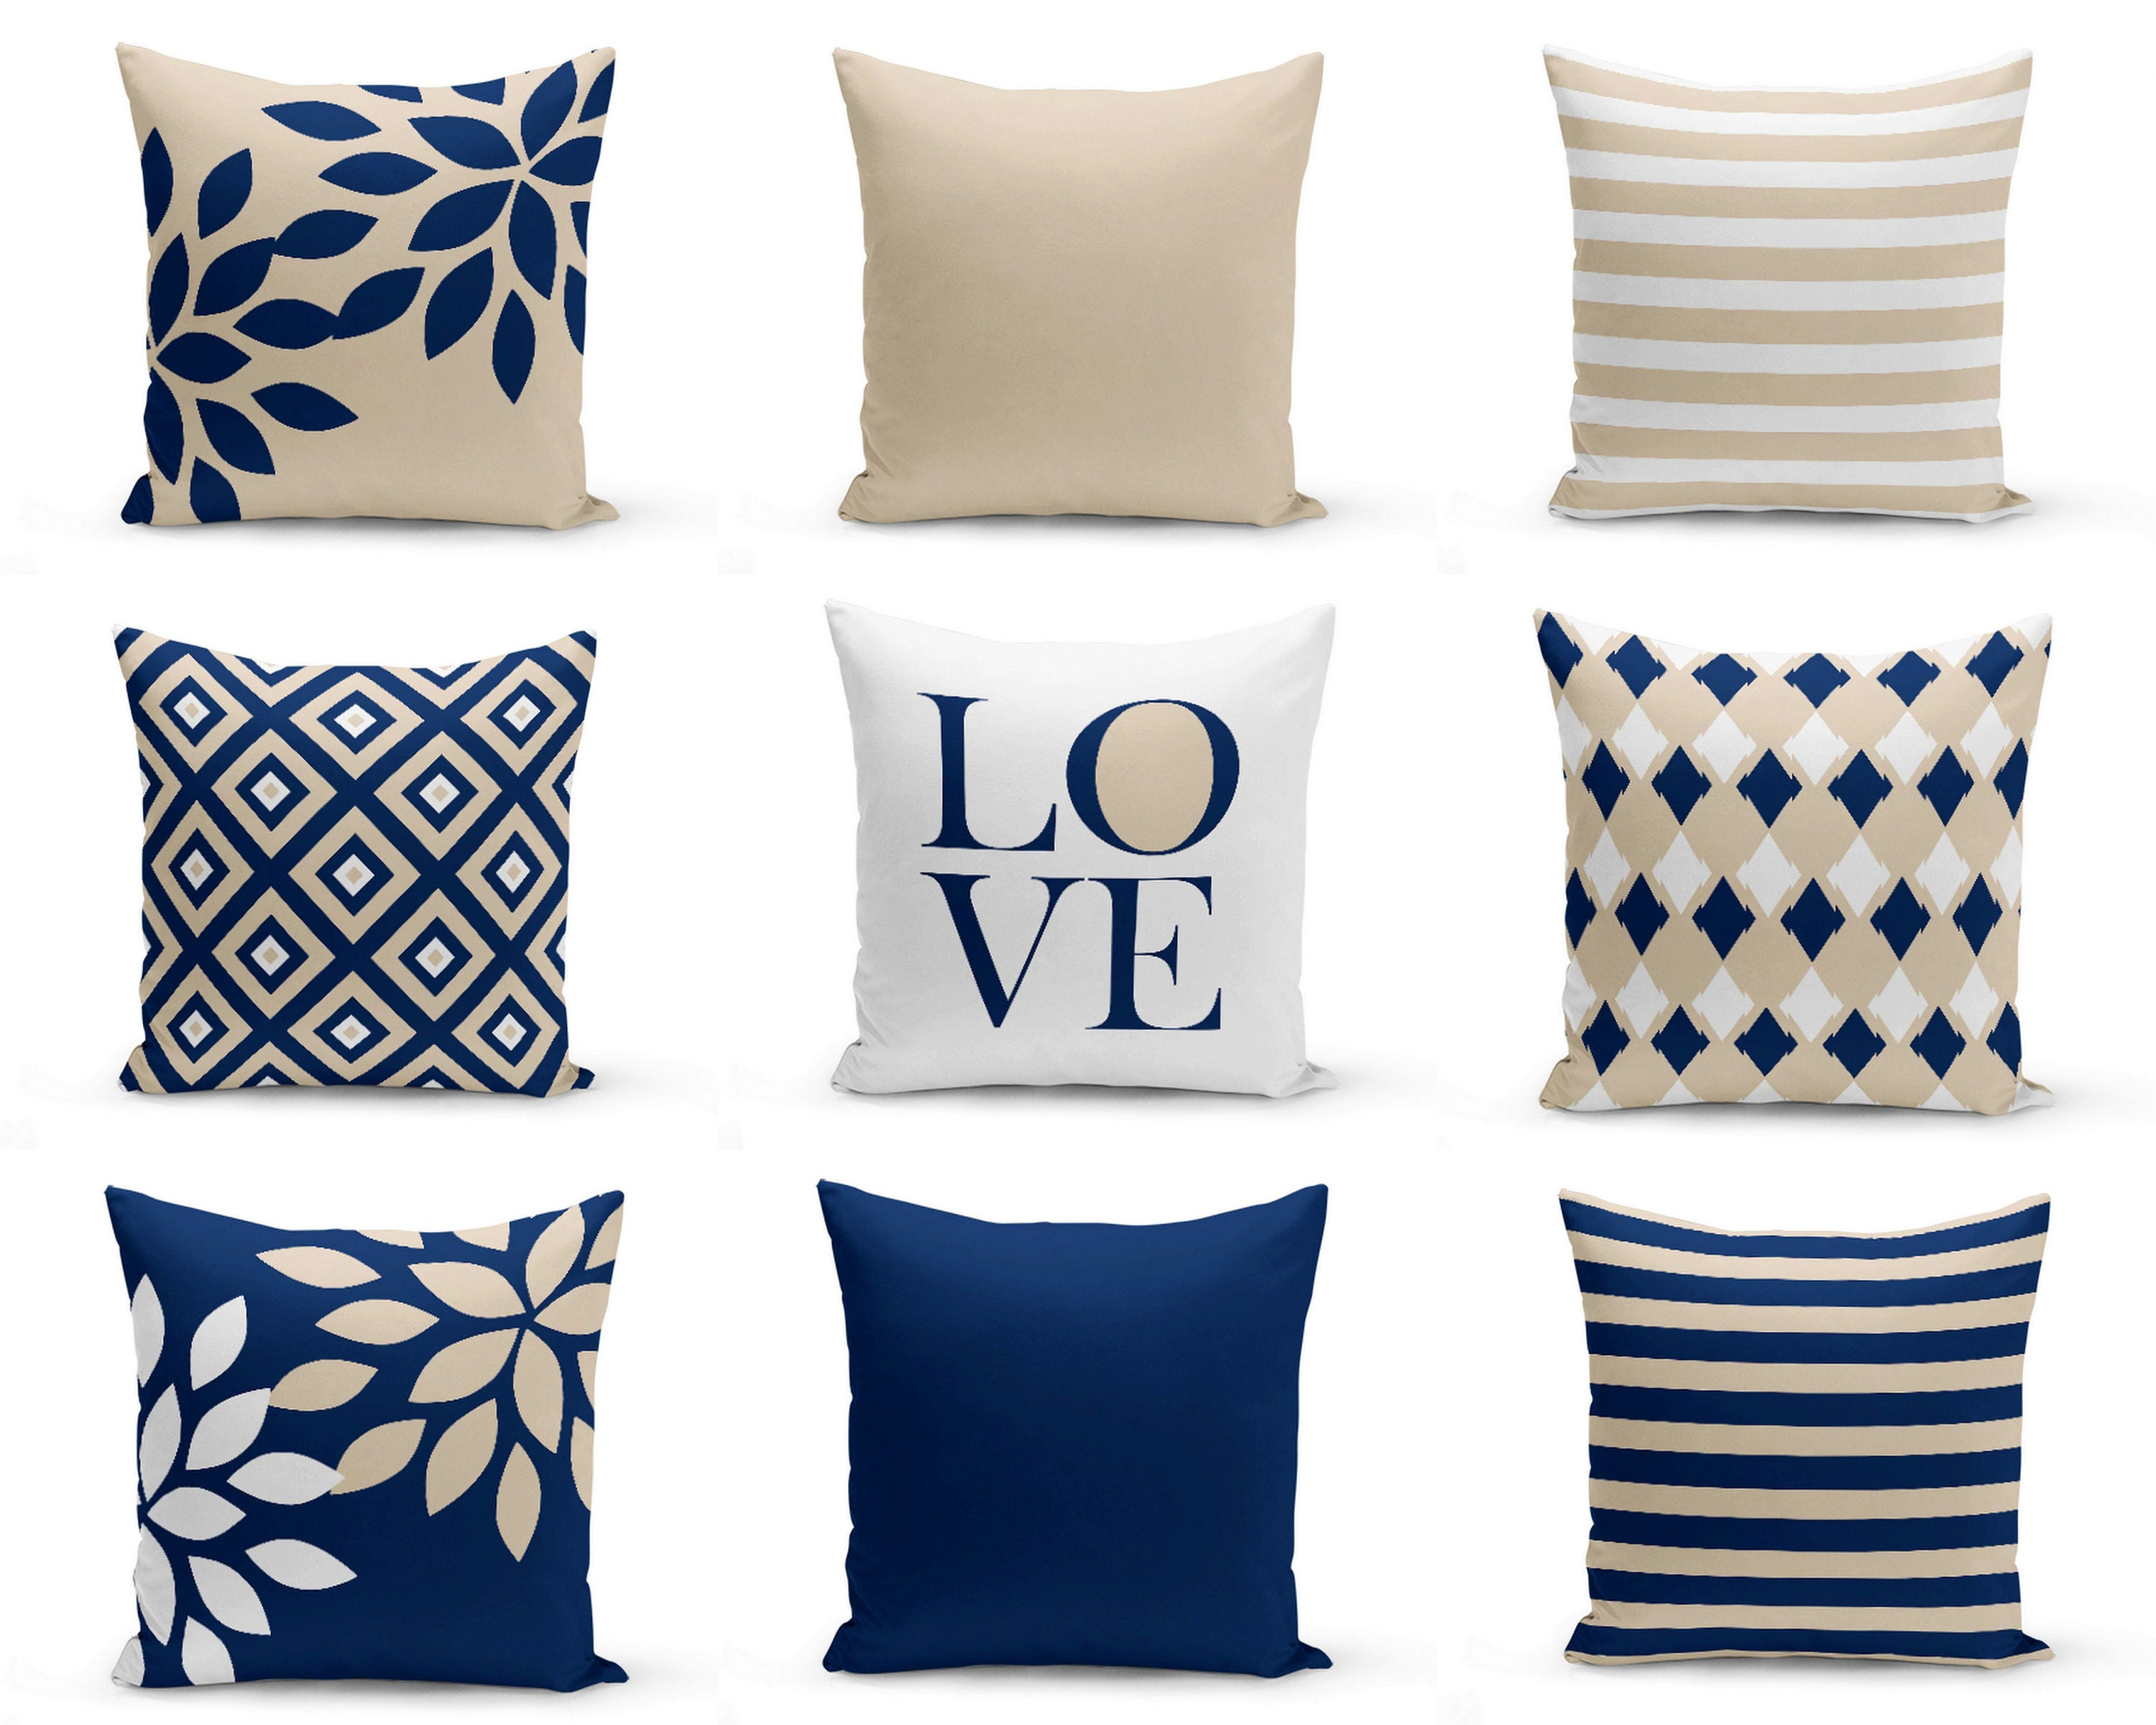 Navy blue and yellow decorative pillows - Navy Throw Pillows Pillow Covers Cushion Cover Home Decor Mix And Match